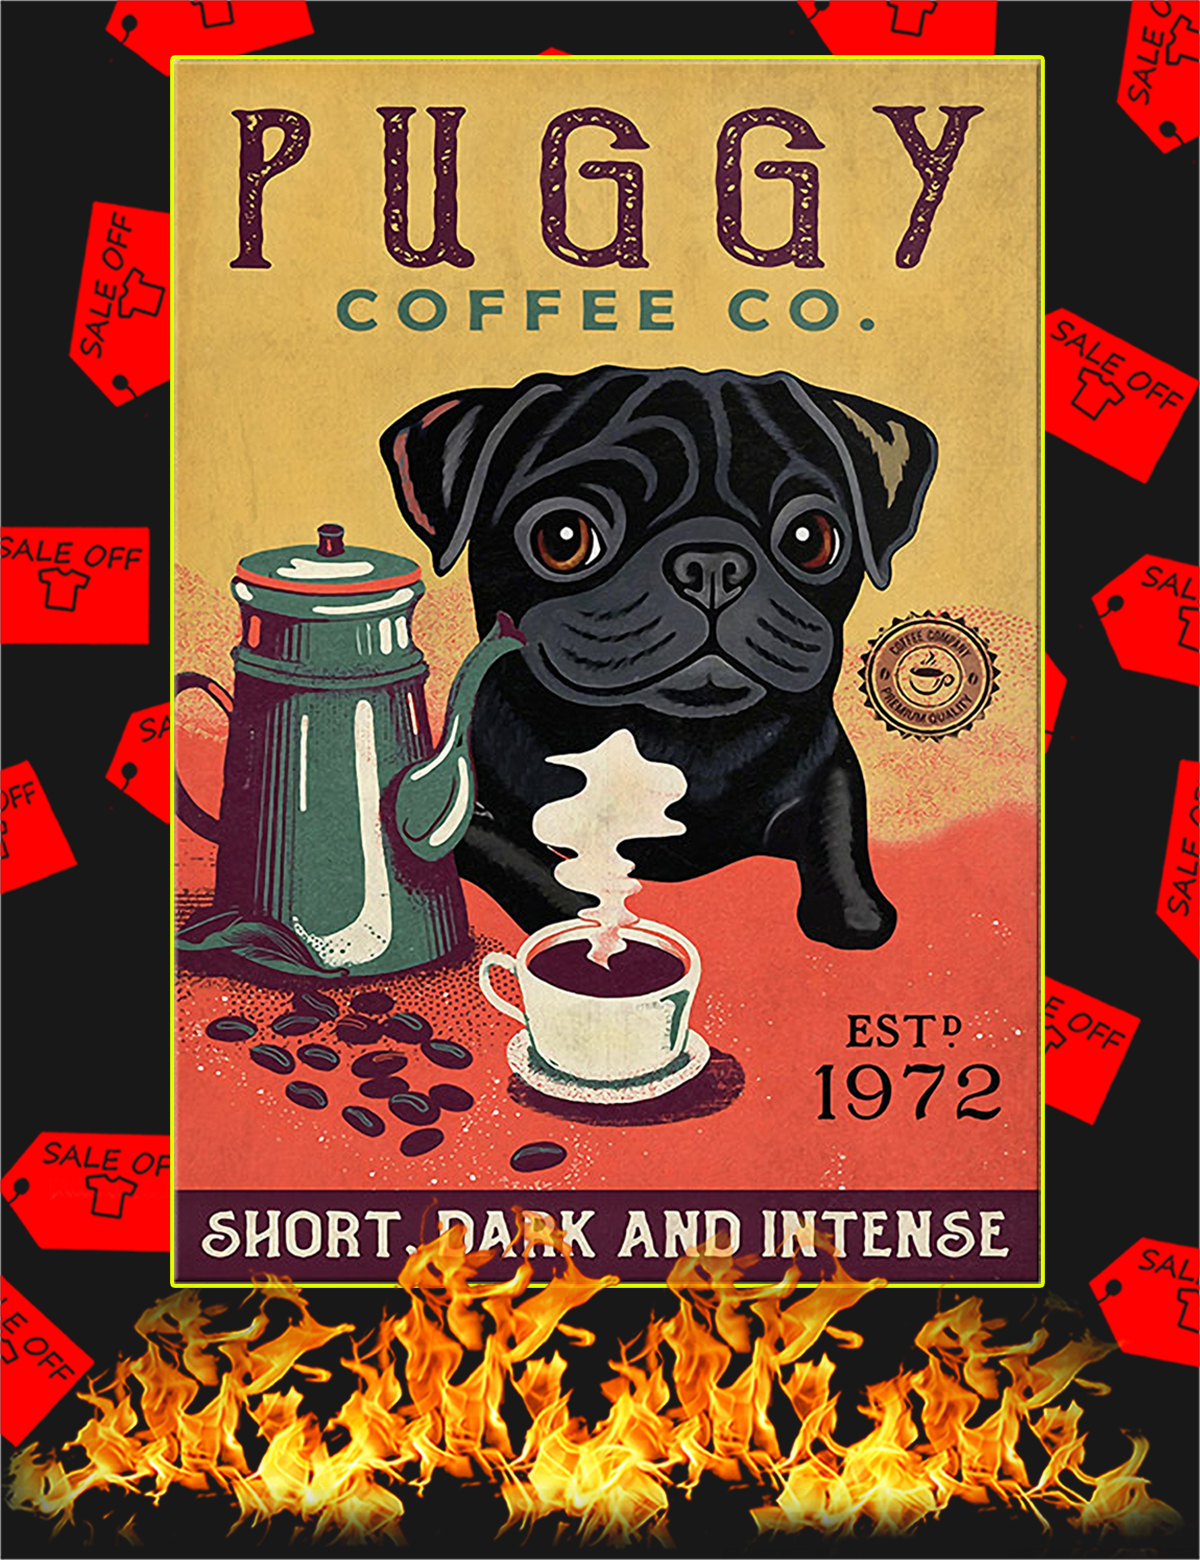 Puggy coffee co short dark and intense poster - A1